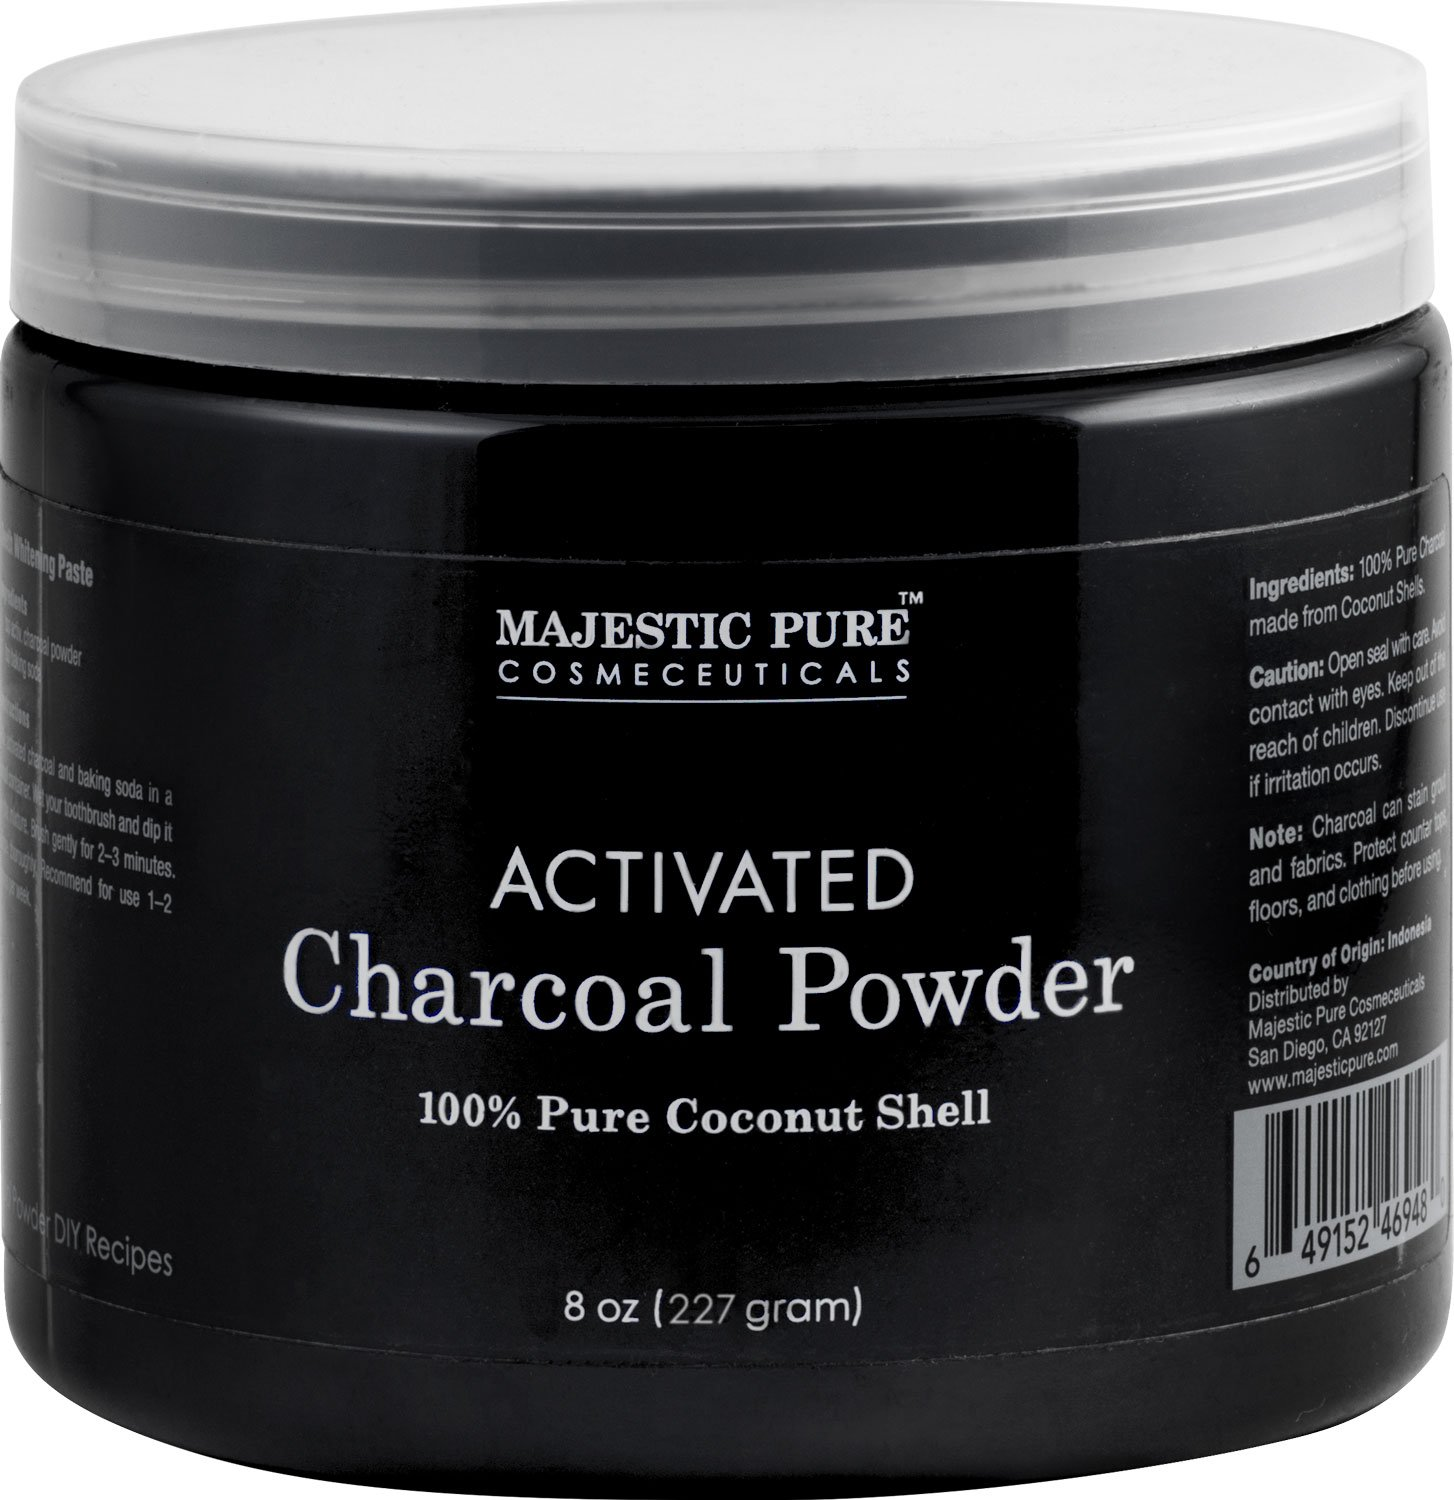 Activated Charcoal Powder 100% coconut shell 8oz, 227mg B06ZZXG2CJ